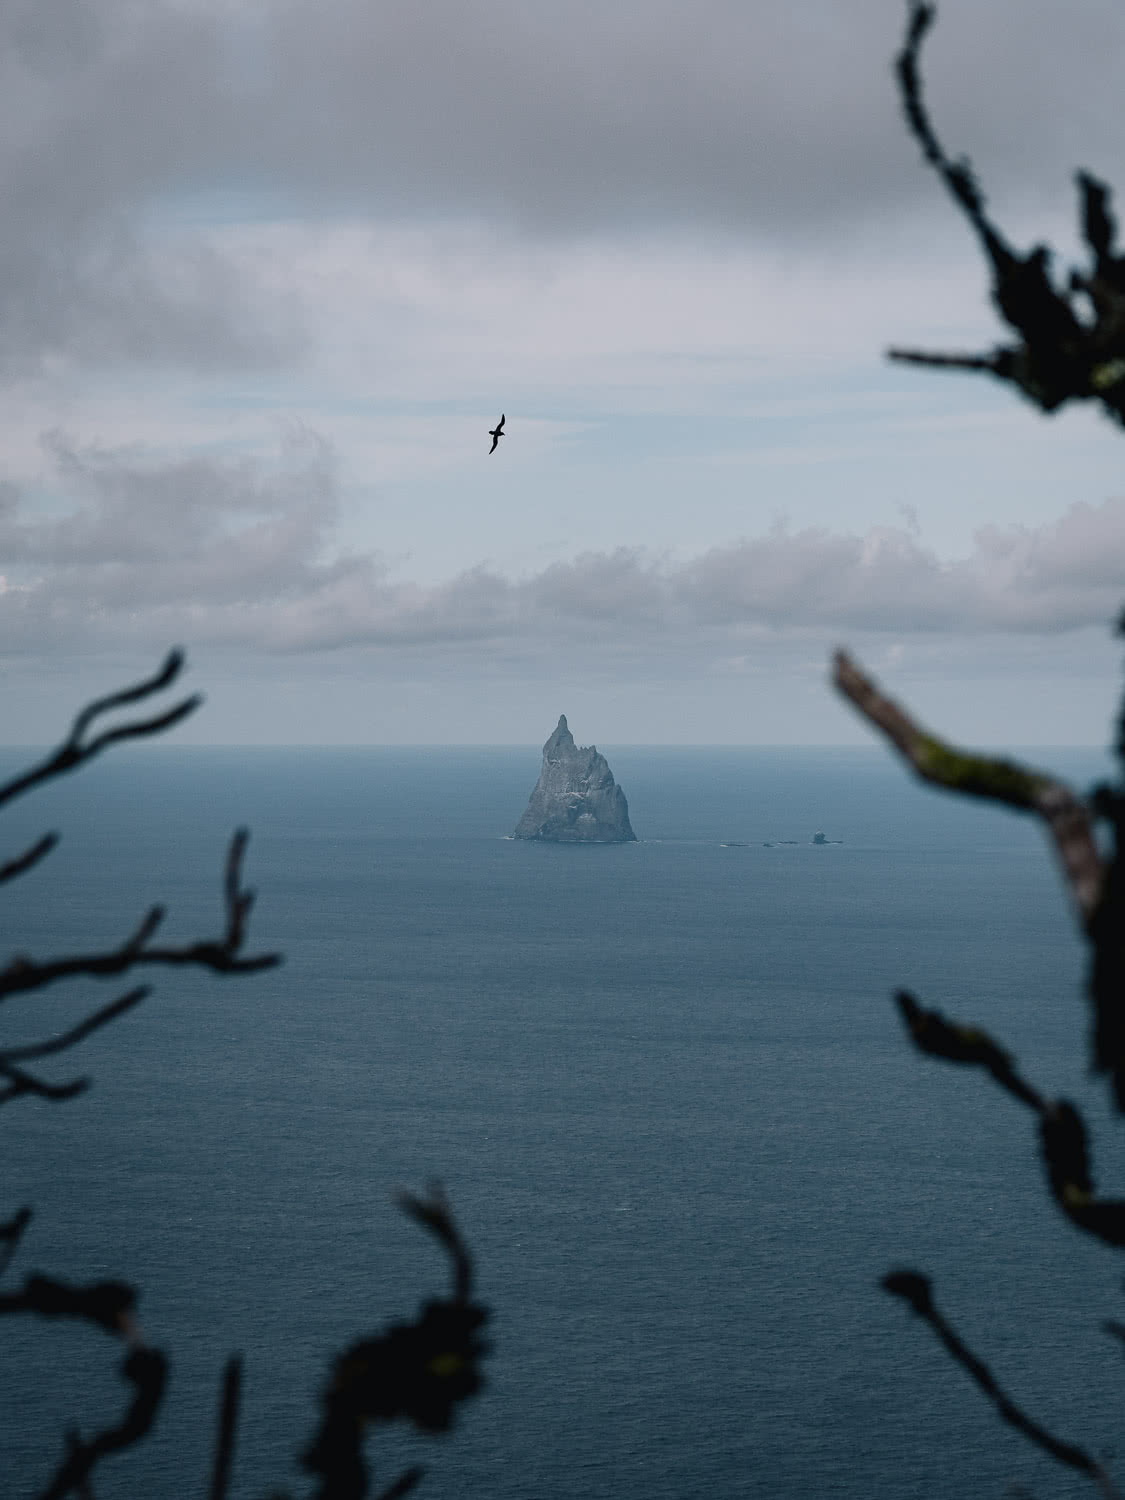 Lord Howe Island's Photography Hot Spots, Matt Horspool, Ball's Pyramid, island, ocean, alone, trees, frame